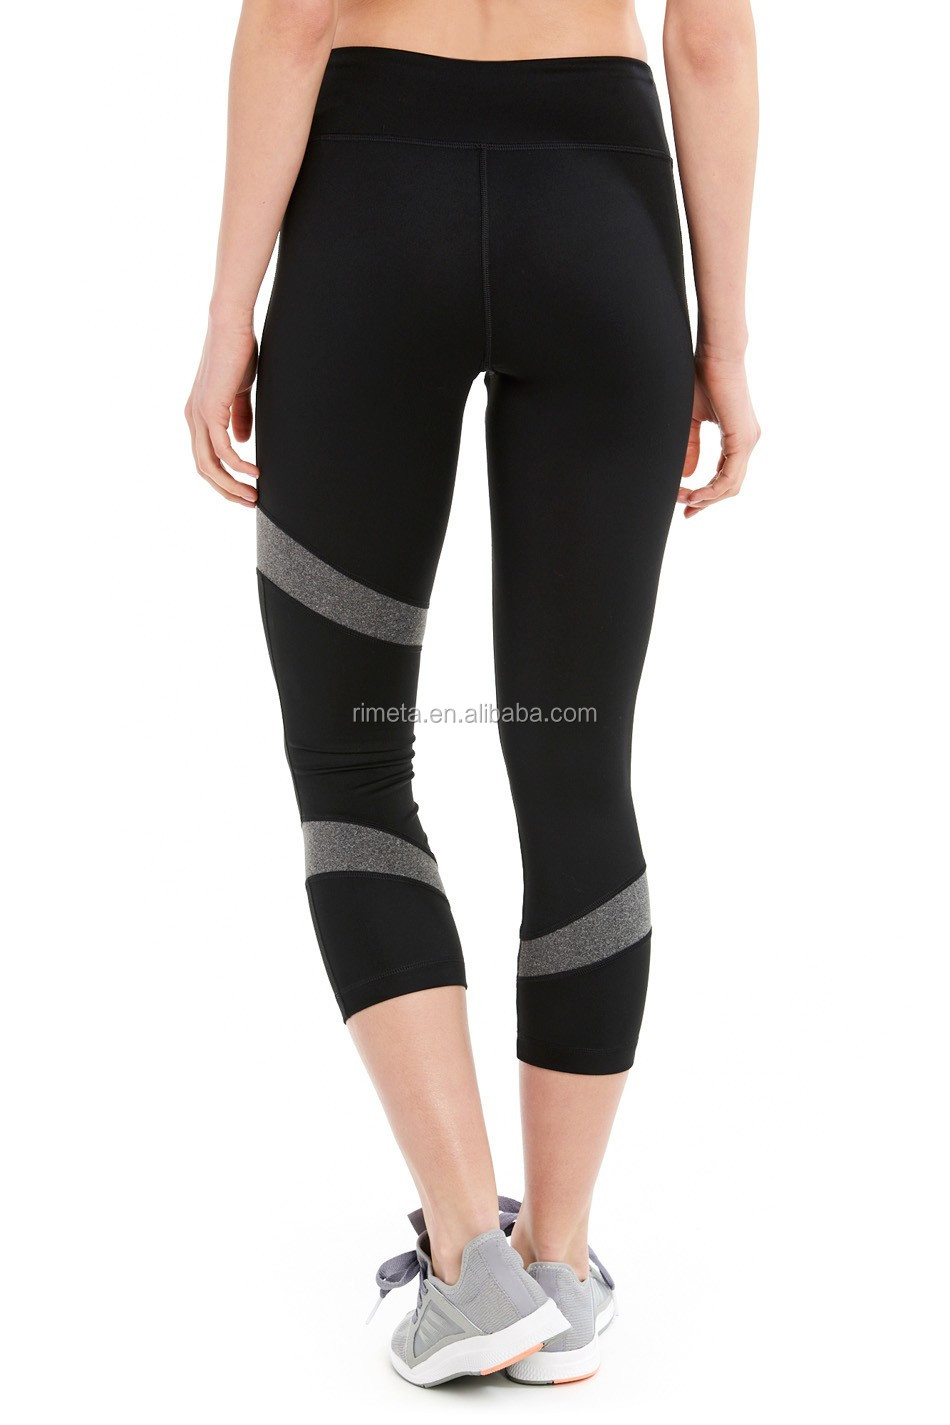 Compression Seamless Tights Yoga Leggings Fitness Pants For Women Active Wear